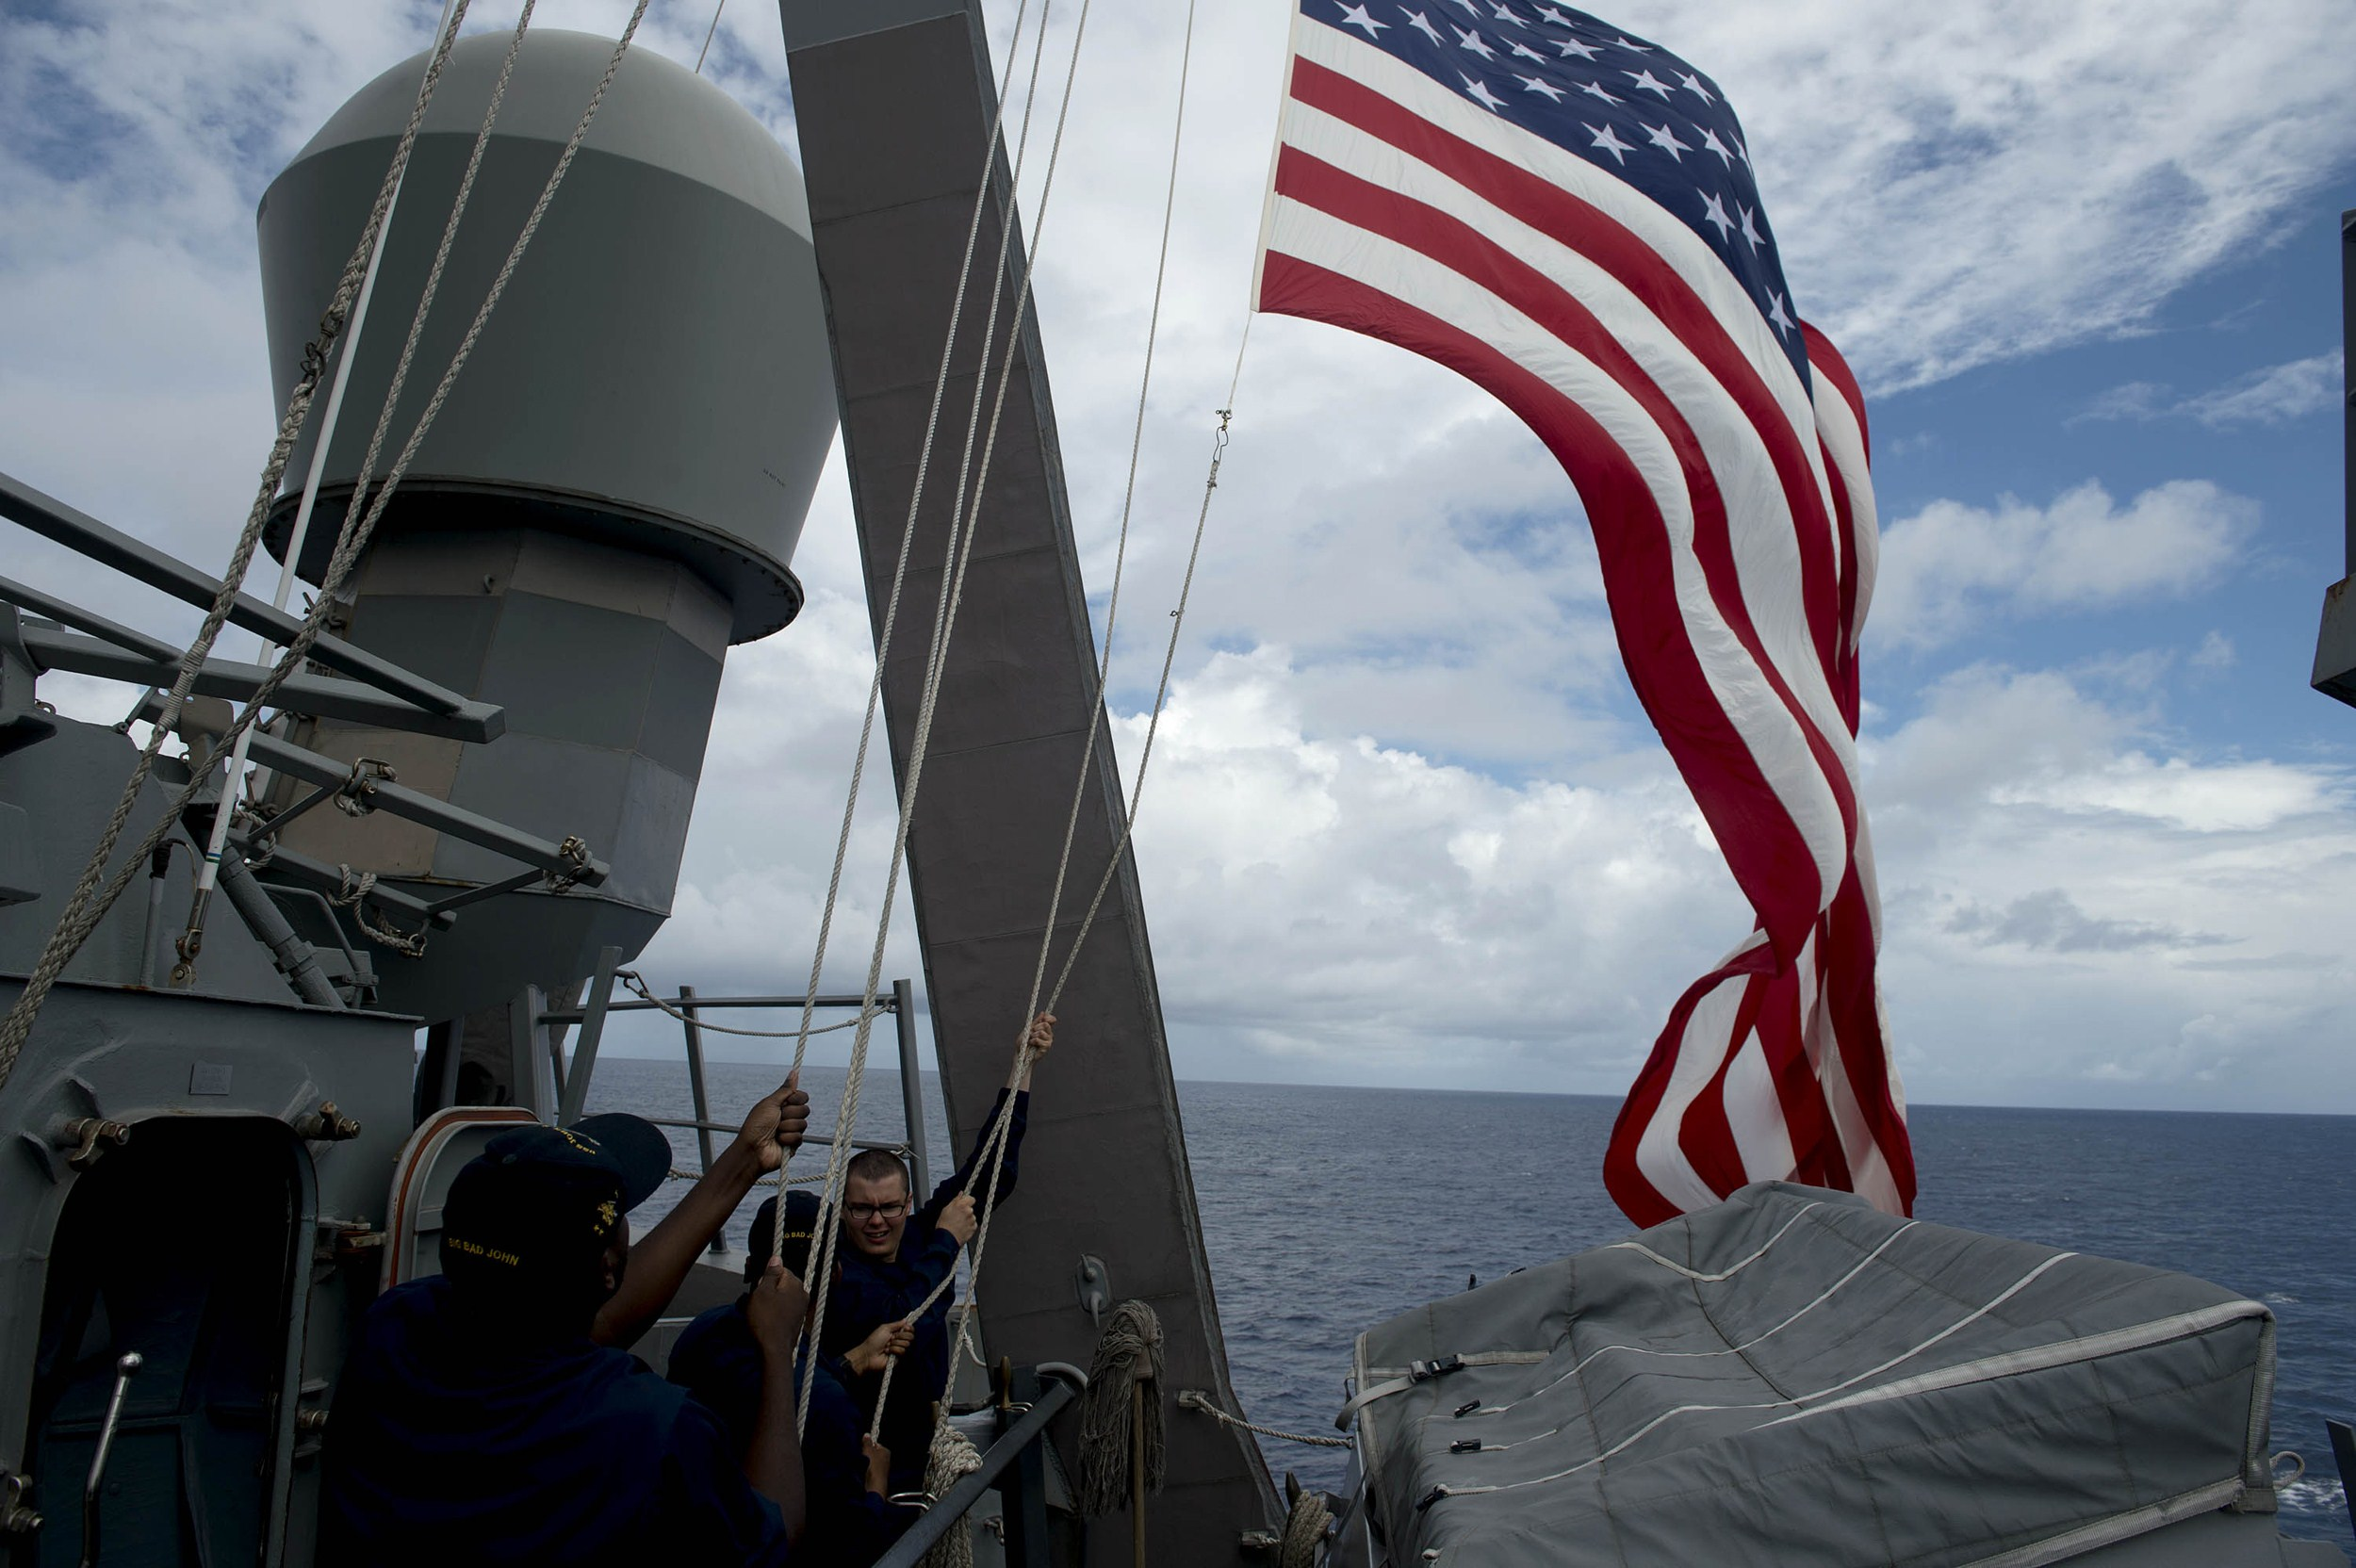 U.S. Navy personnel aboard the U.S.S. John S. McCain raise their country's flag during a bilateral maritime exercise with the Philippine navy in the South China Sea near waters claimed by Beijing on June 28, 2014